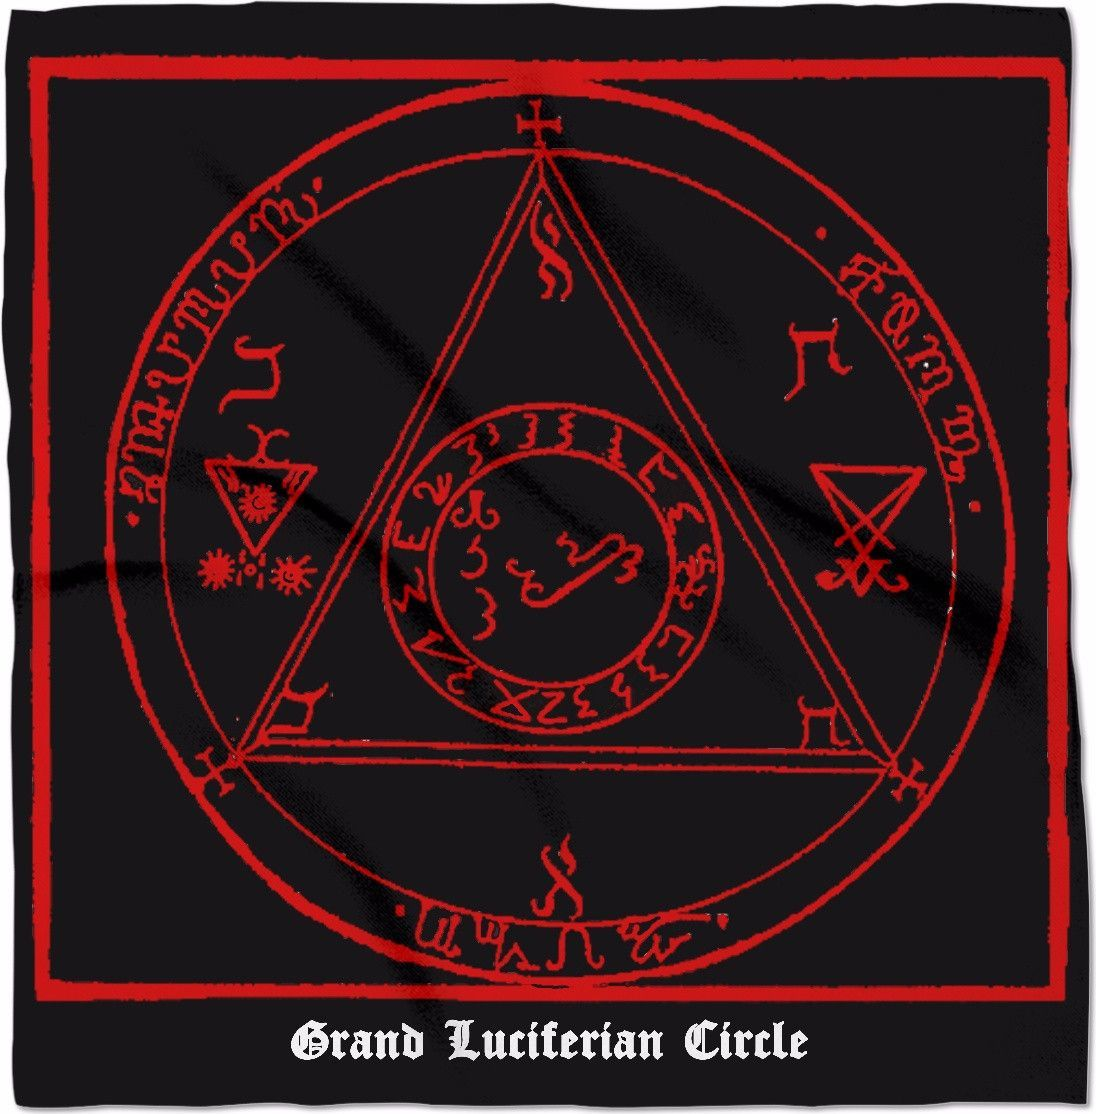 Grand luciferian circle 24 altars banners and symbols from luciferian witchcraft and book of the witch moon the symbol representing biocorpaavc Gallery